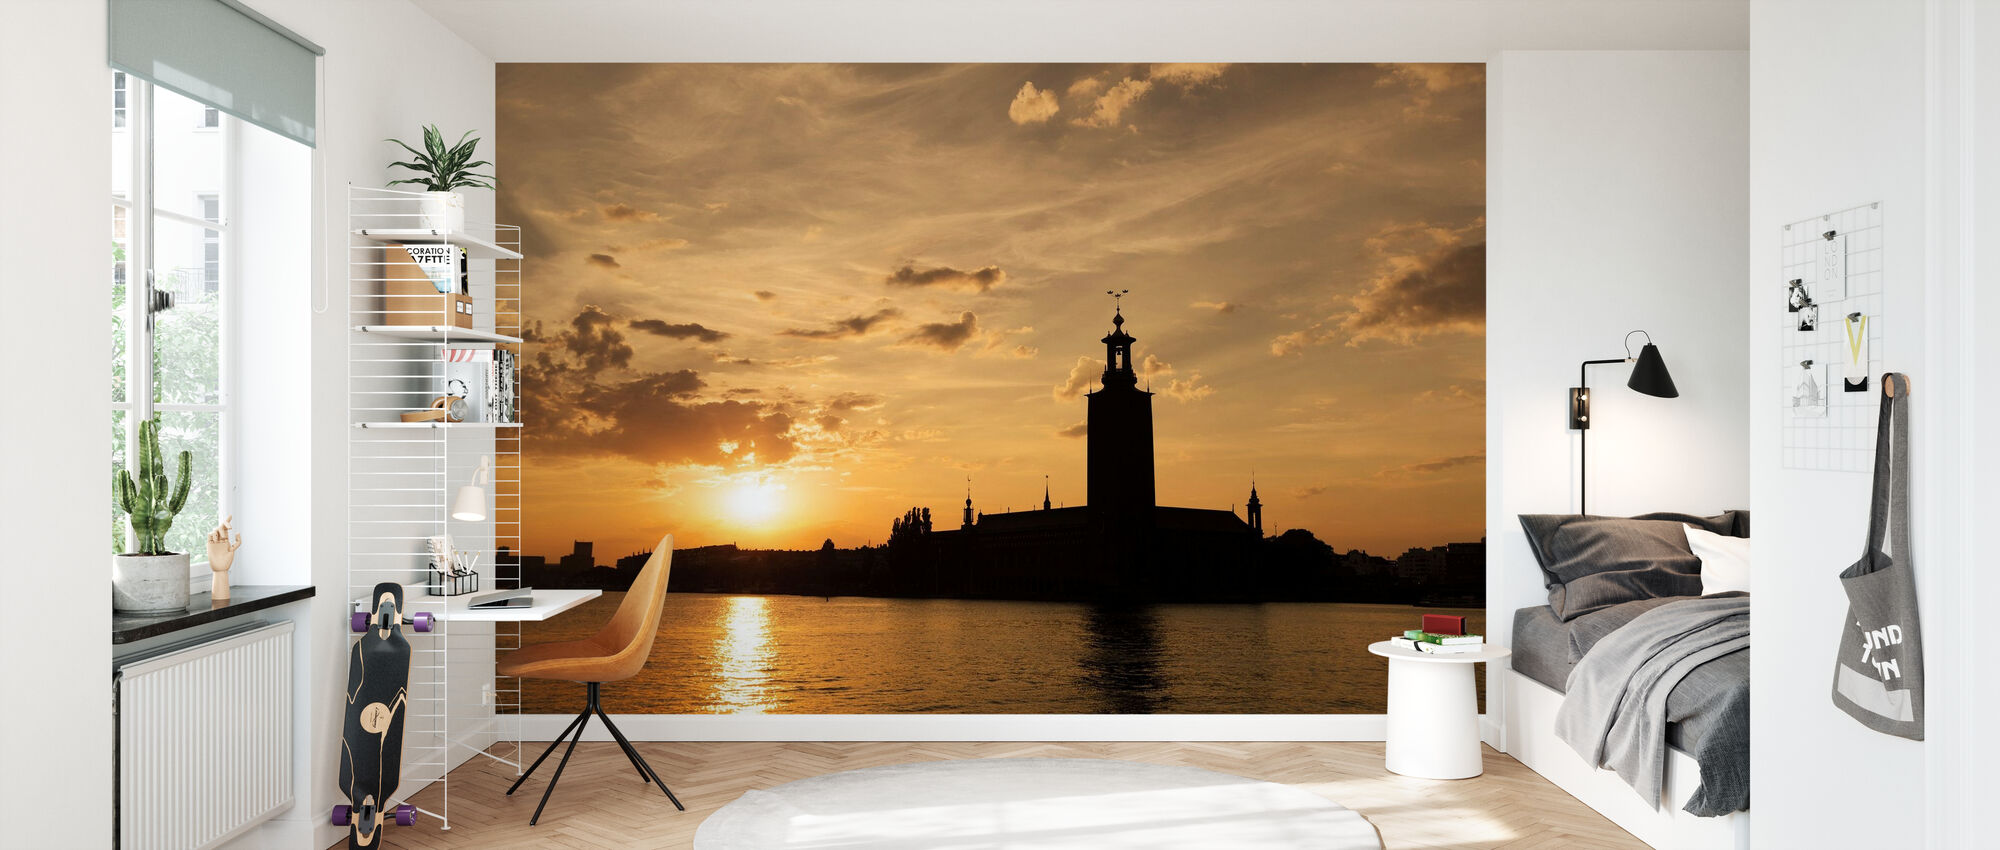 Stockholm City Hall in Silhouette - Wallpaper - Kids Room